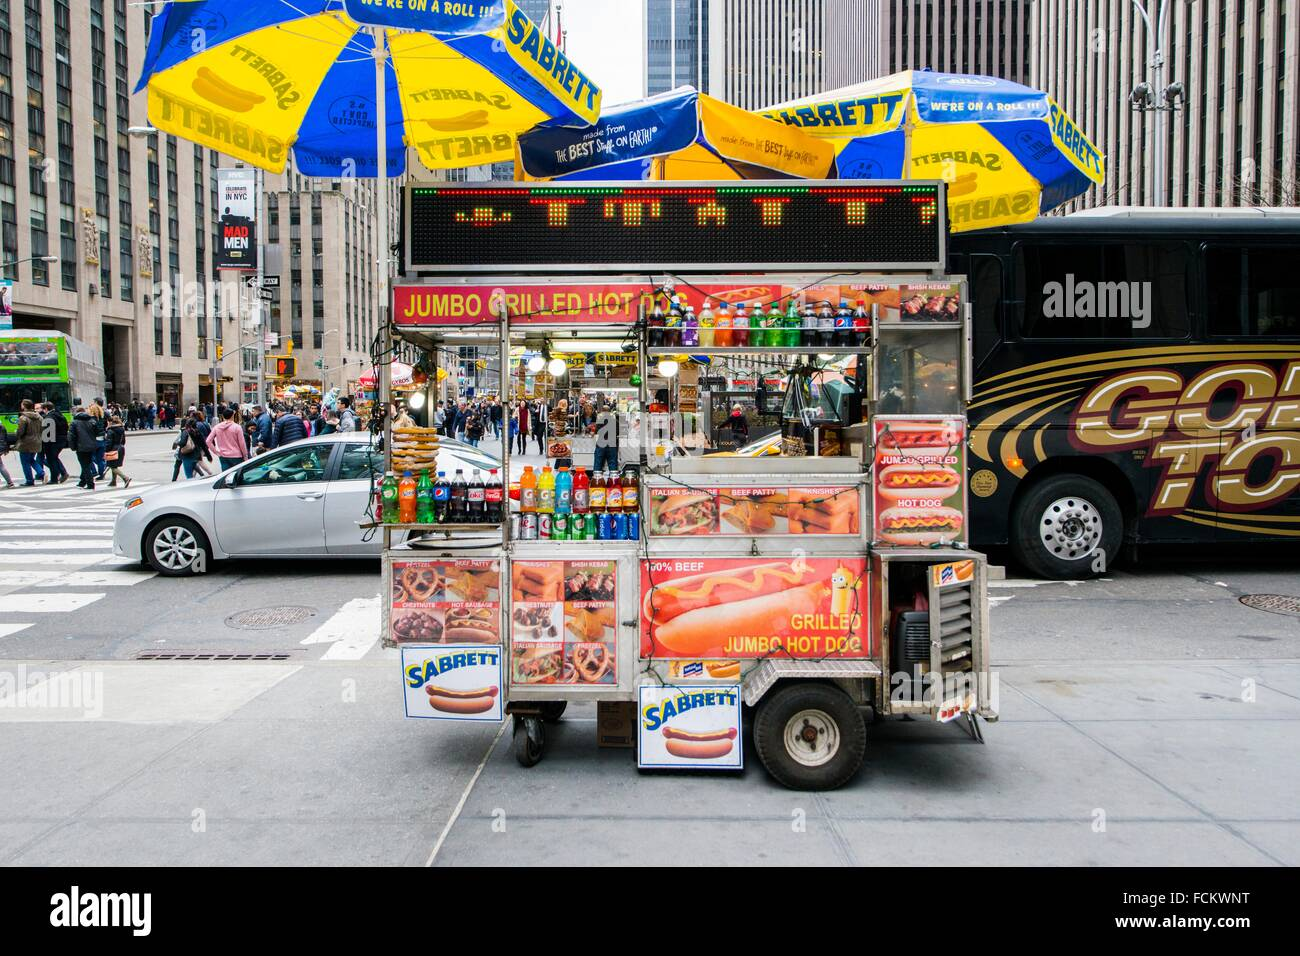 Mobile Hot Dog Stand Stock Photos & Mobile Hot Dog Stand